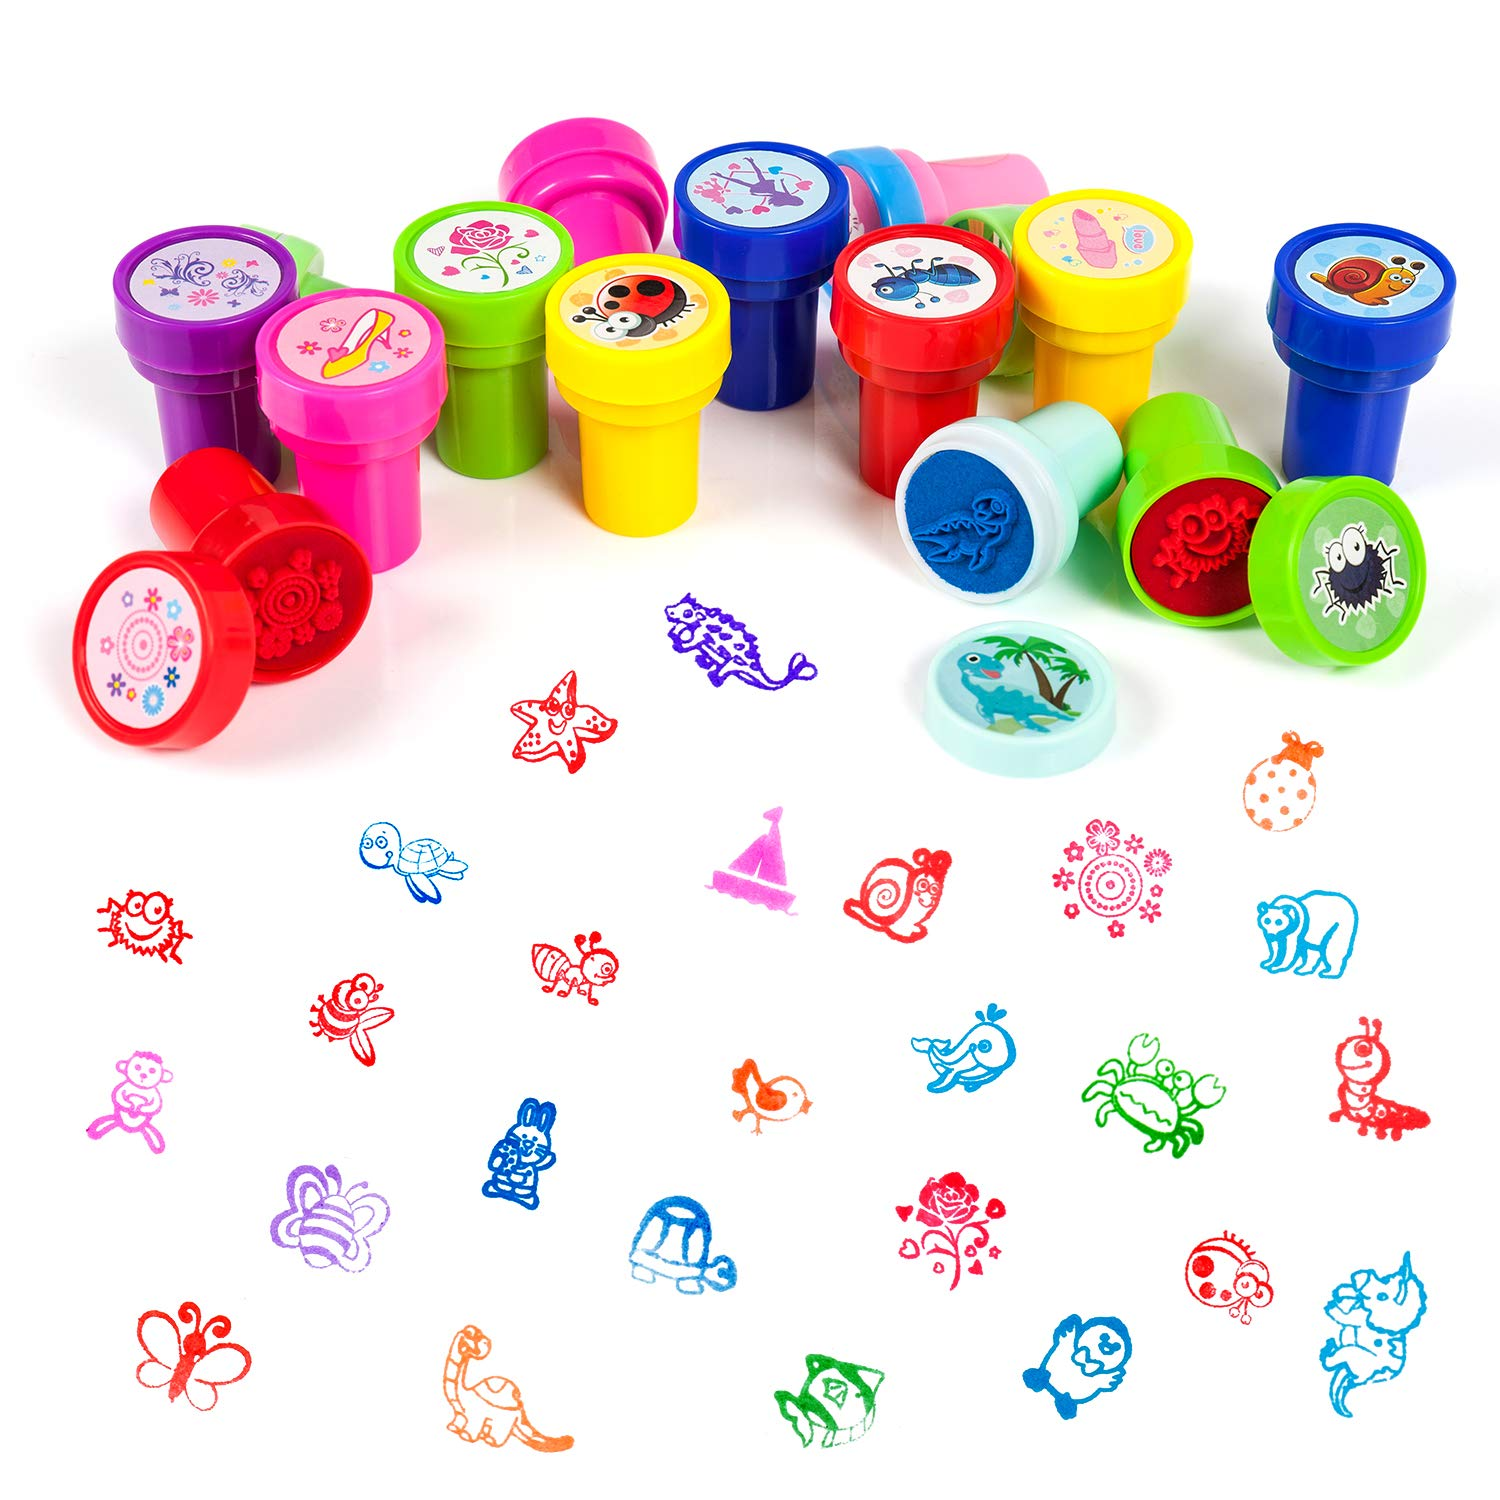 Teacher Stamps Party Favor Surprise Eggs for Easter Basket Stuffers HOOJO 48 Pieces Prefilled Easter Eggs with Assorted Stamps for Kids